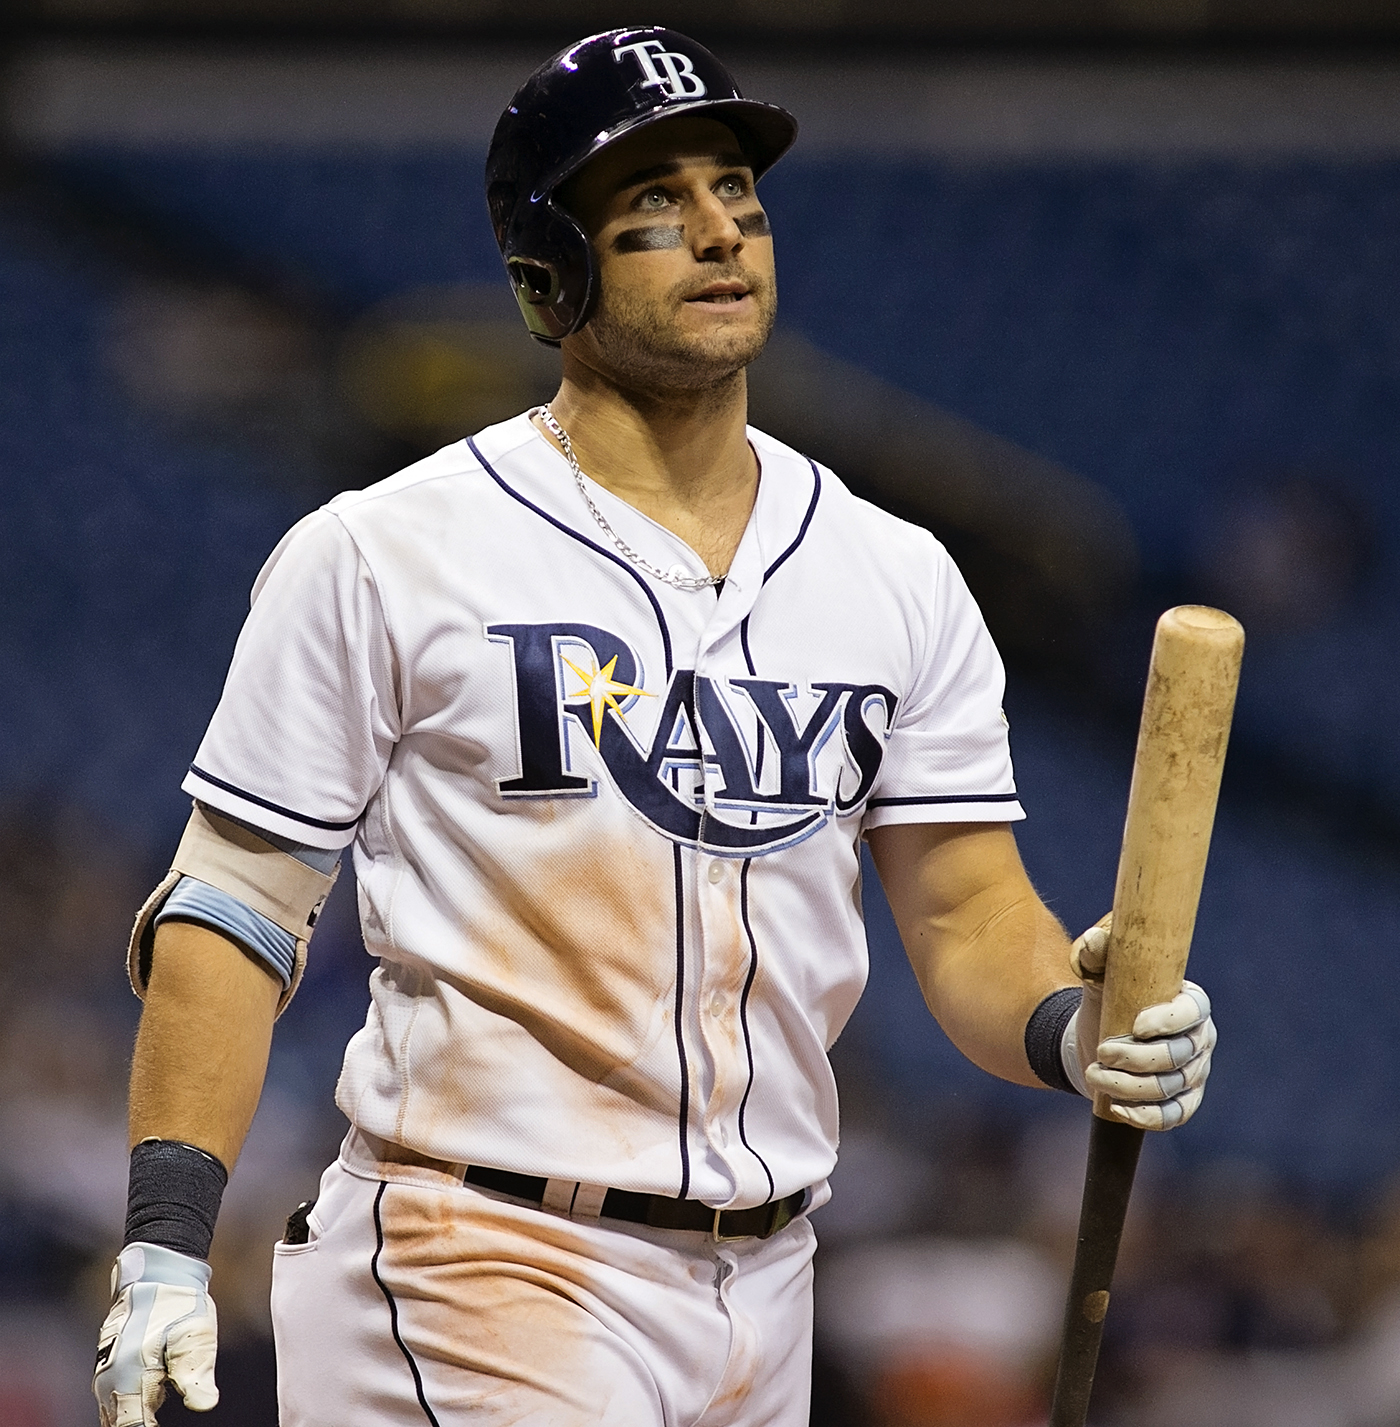 Kiermaier had two hits in Rays' defeat./CARMEN MANDATO